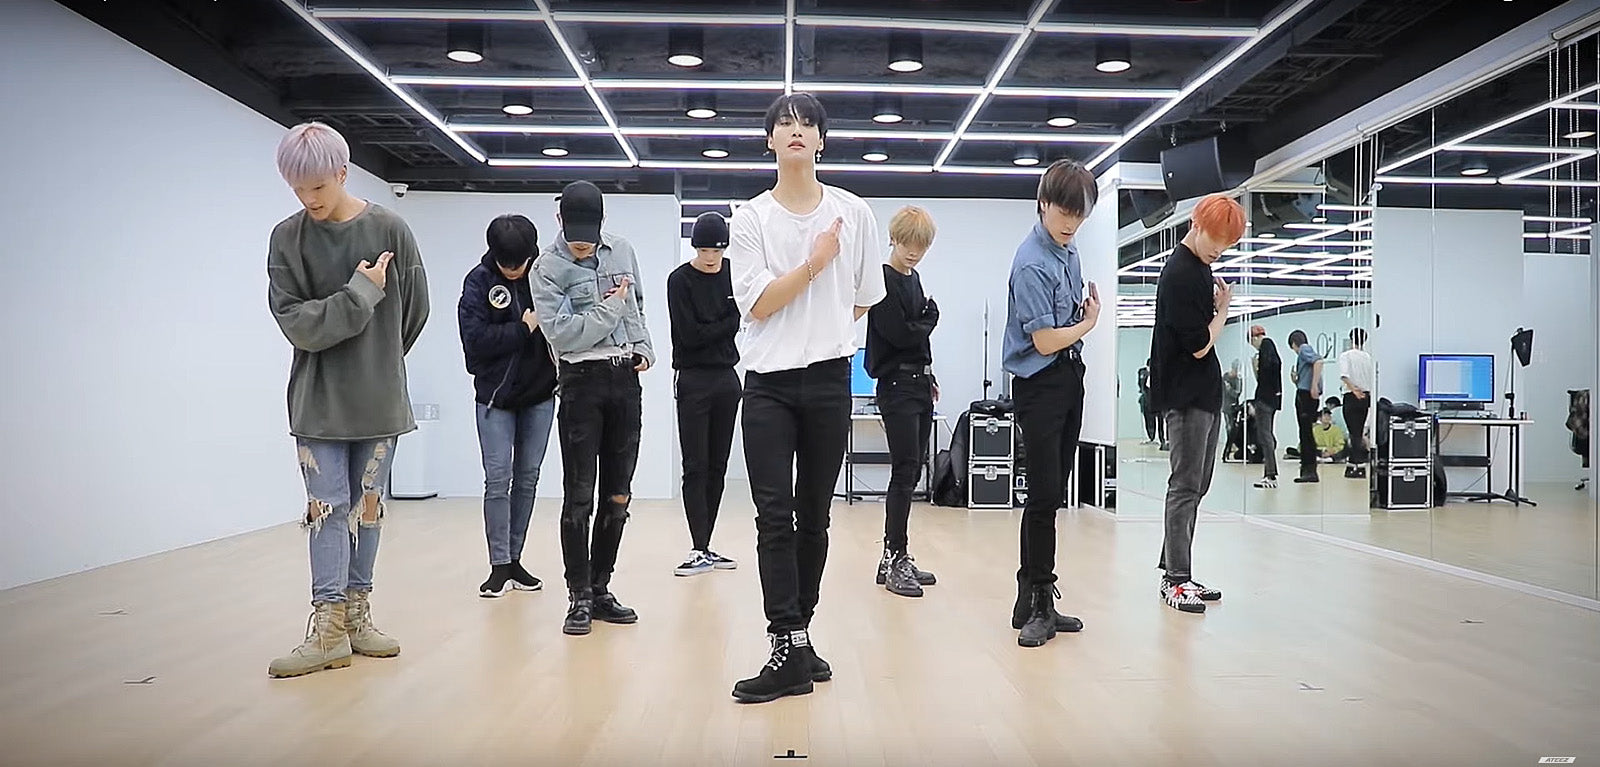 "(Video) ATEEZ releases its training video on ""WONDERLAND"" - Kpopshop"